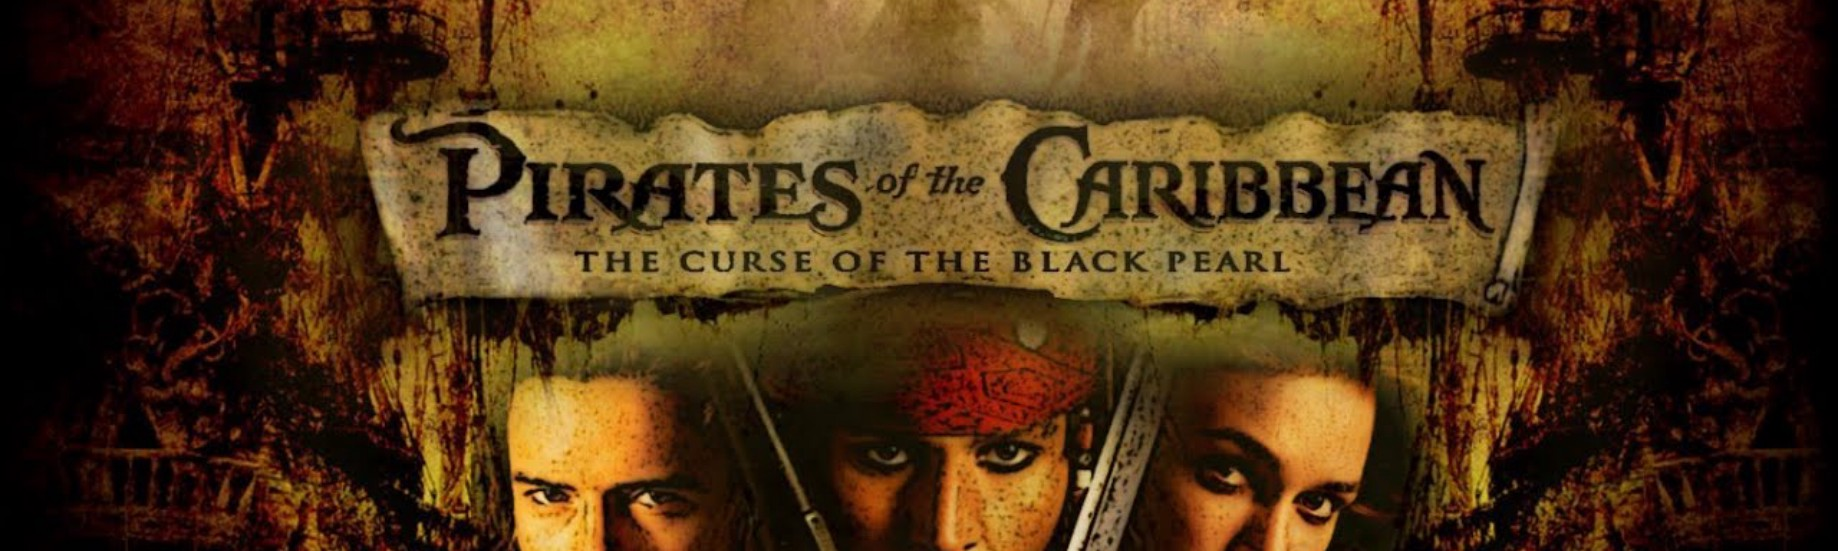 Movie Pirates Of The Caribbean The Curse Of The Black Pearl 2003 Wallpaper